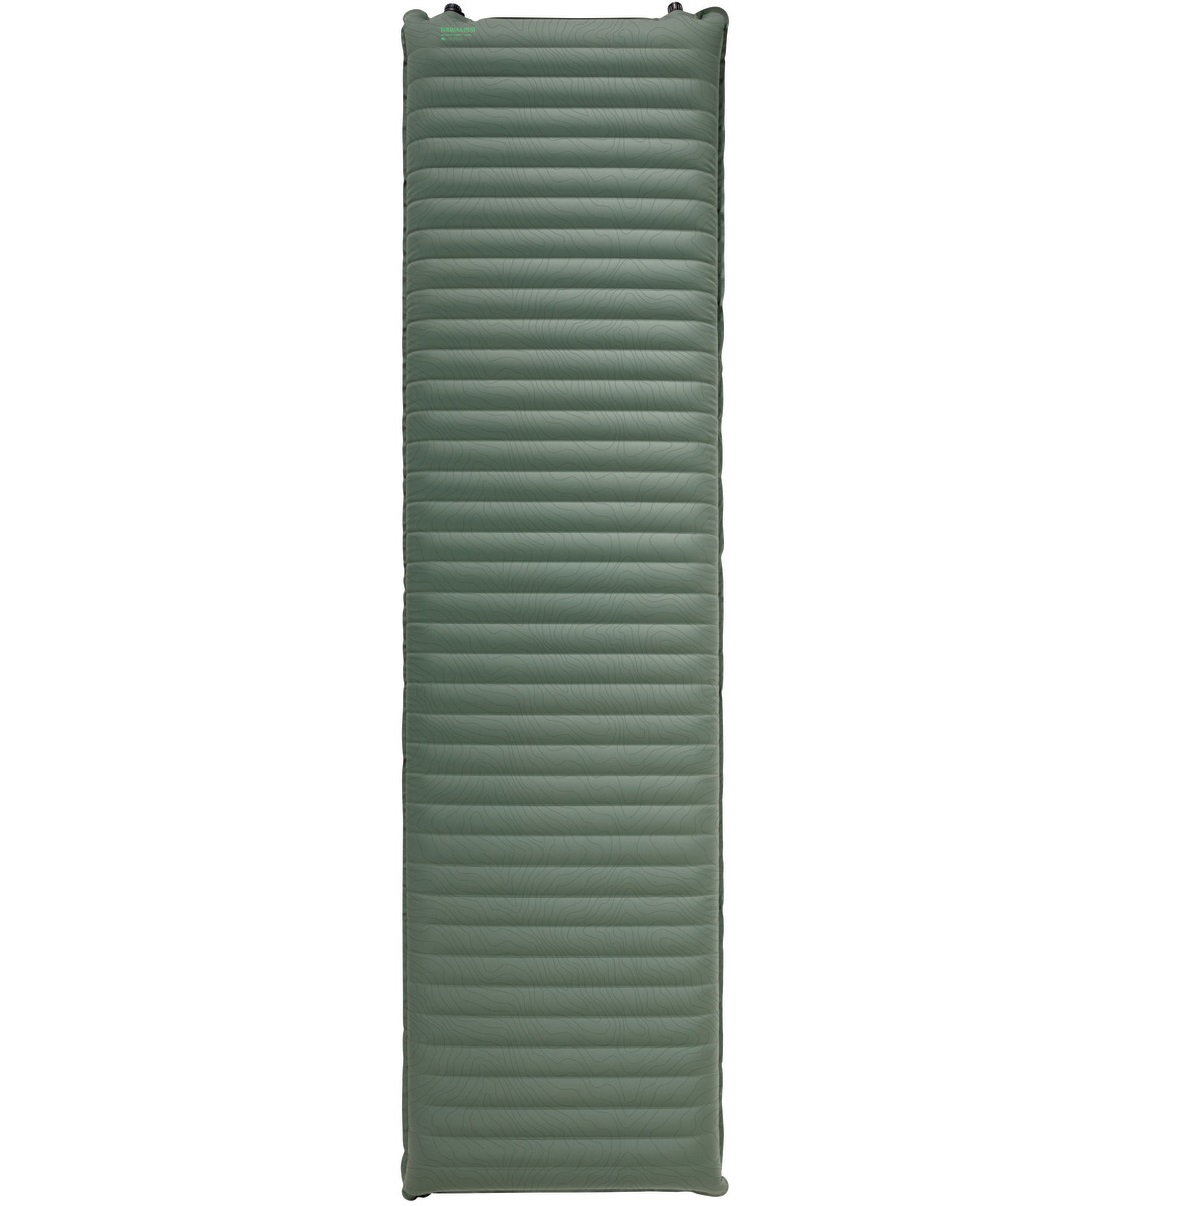 Therm-a-Rest NeoAir Topo Luxe Sleeping Pad - Top View